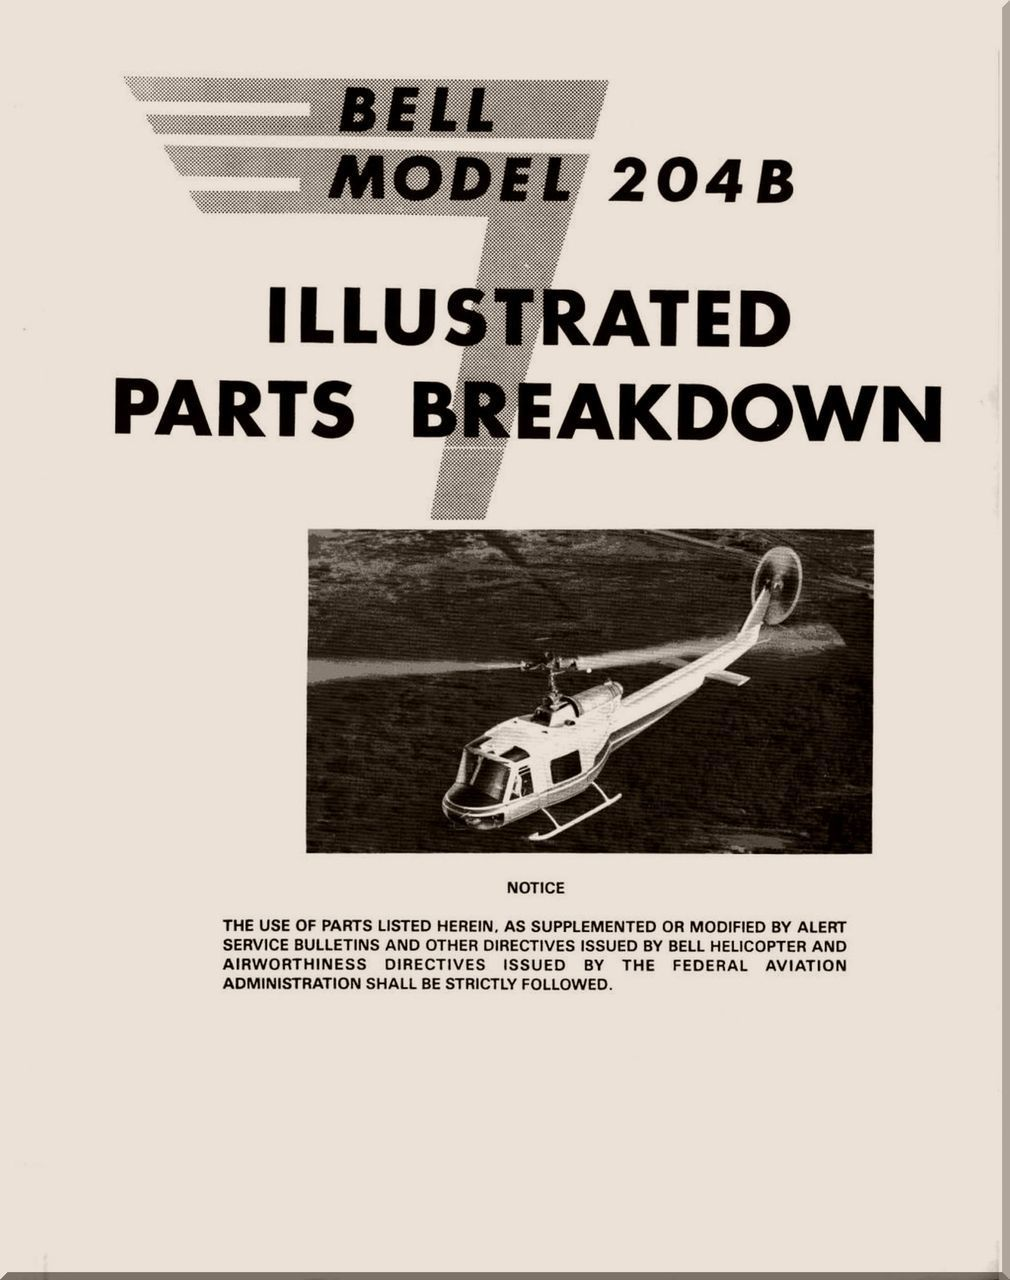 Bell Helicopter 204 B Illustrated Parts Breakdown Manual - - Aircraft  Reports - Aircraft Manuals - Aircraft Helicopter Engines Propellers  Blueprints ...